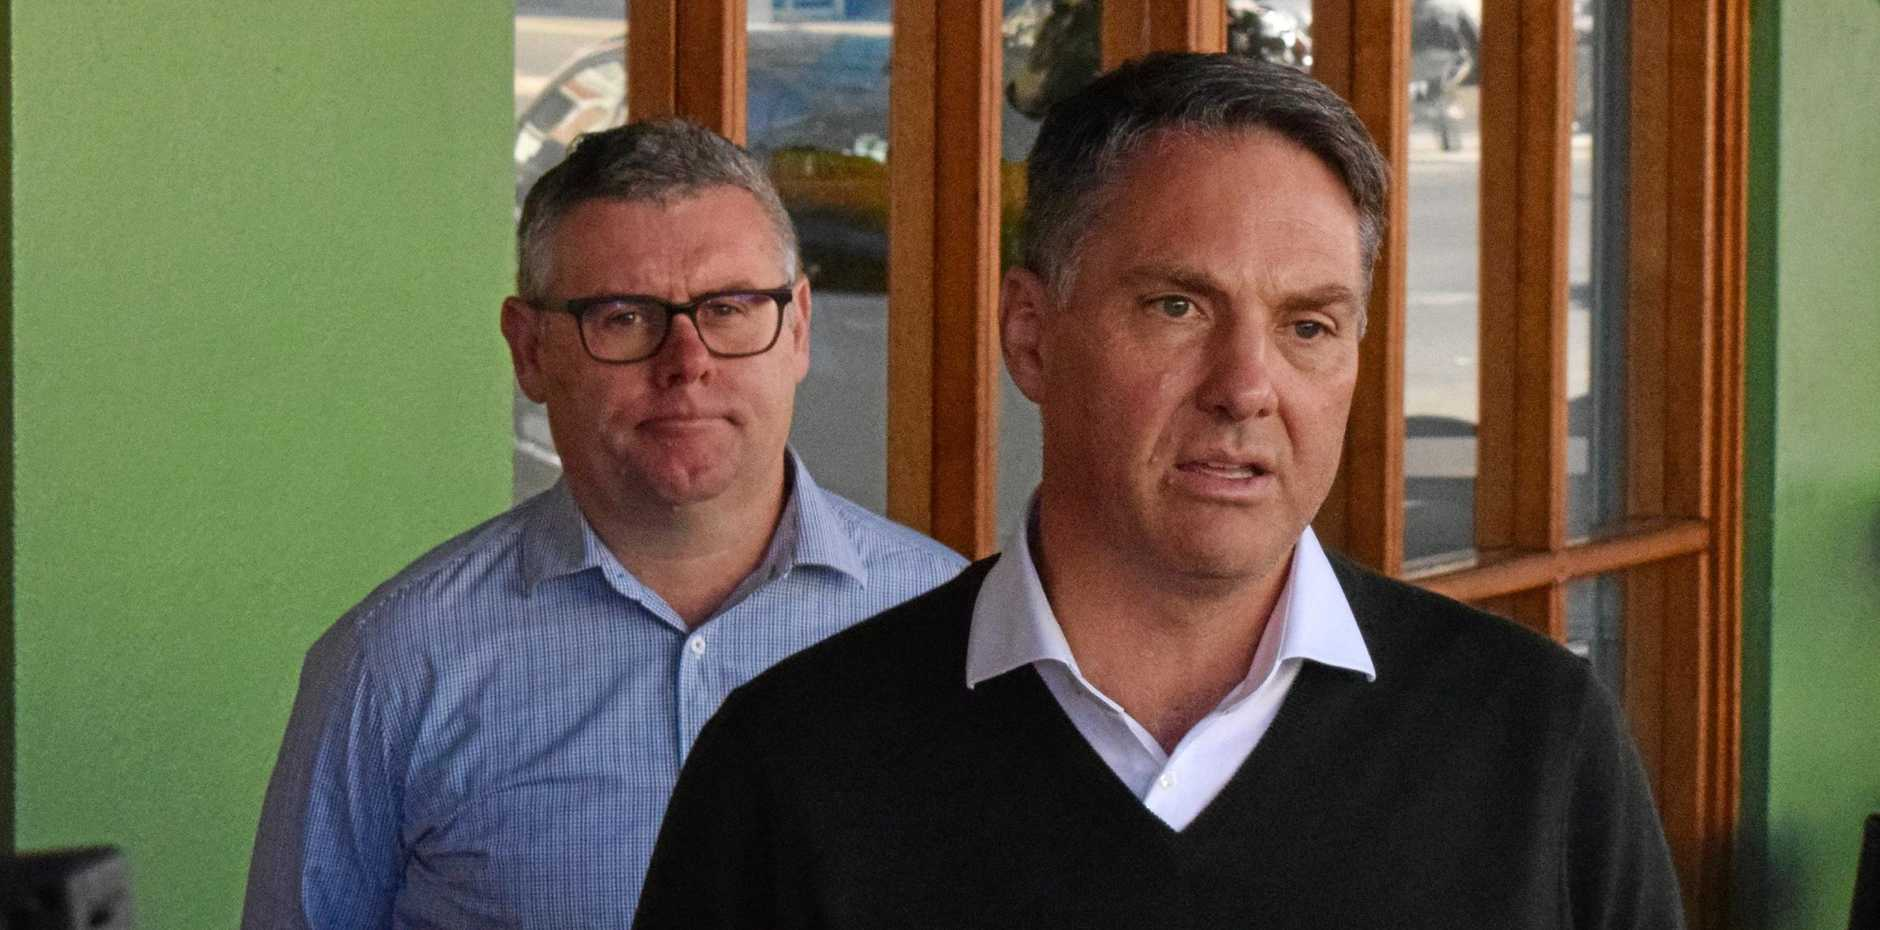 Labor deputy leader Richard Marles (right) and Shadow Minister for Northern Australia Murray Watt are touring CQ.